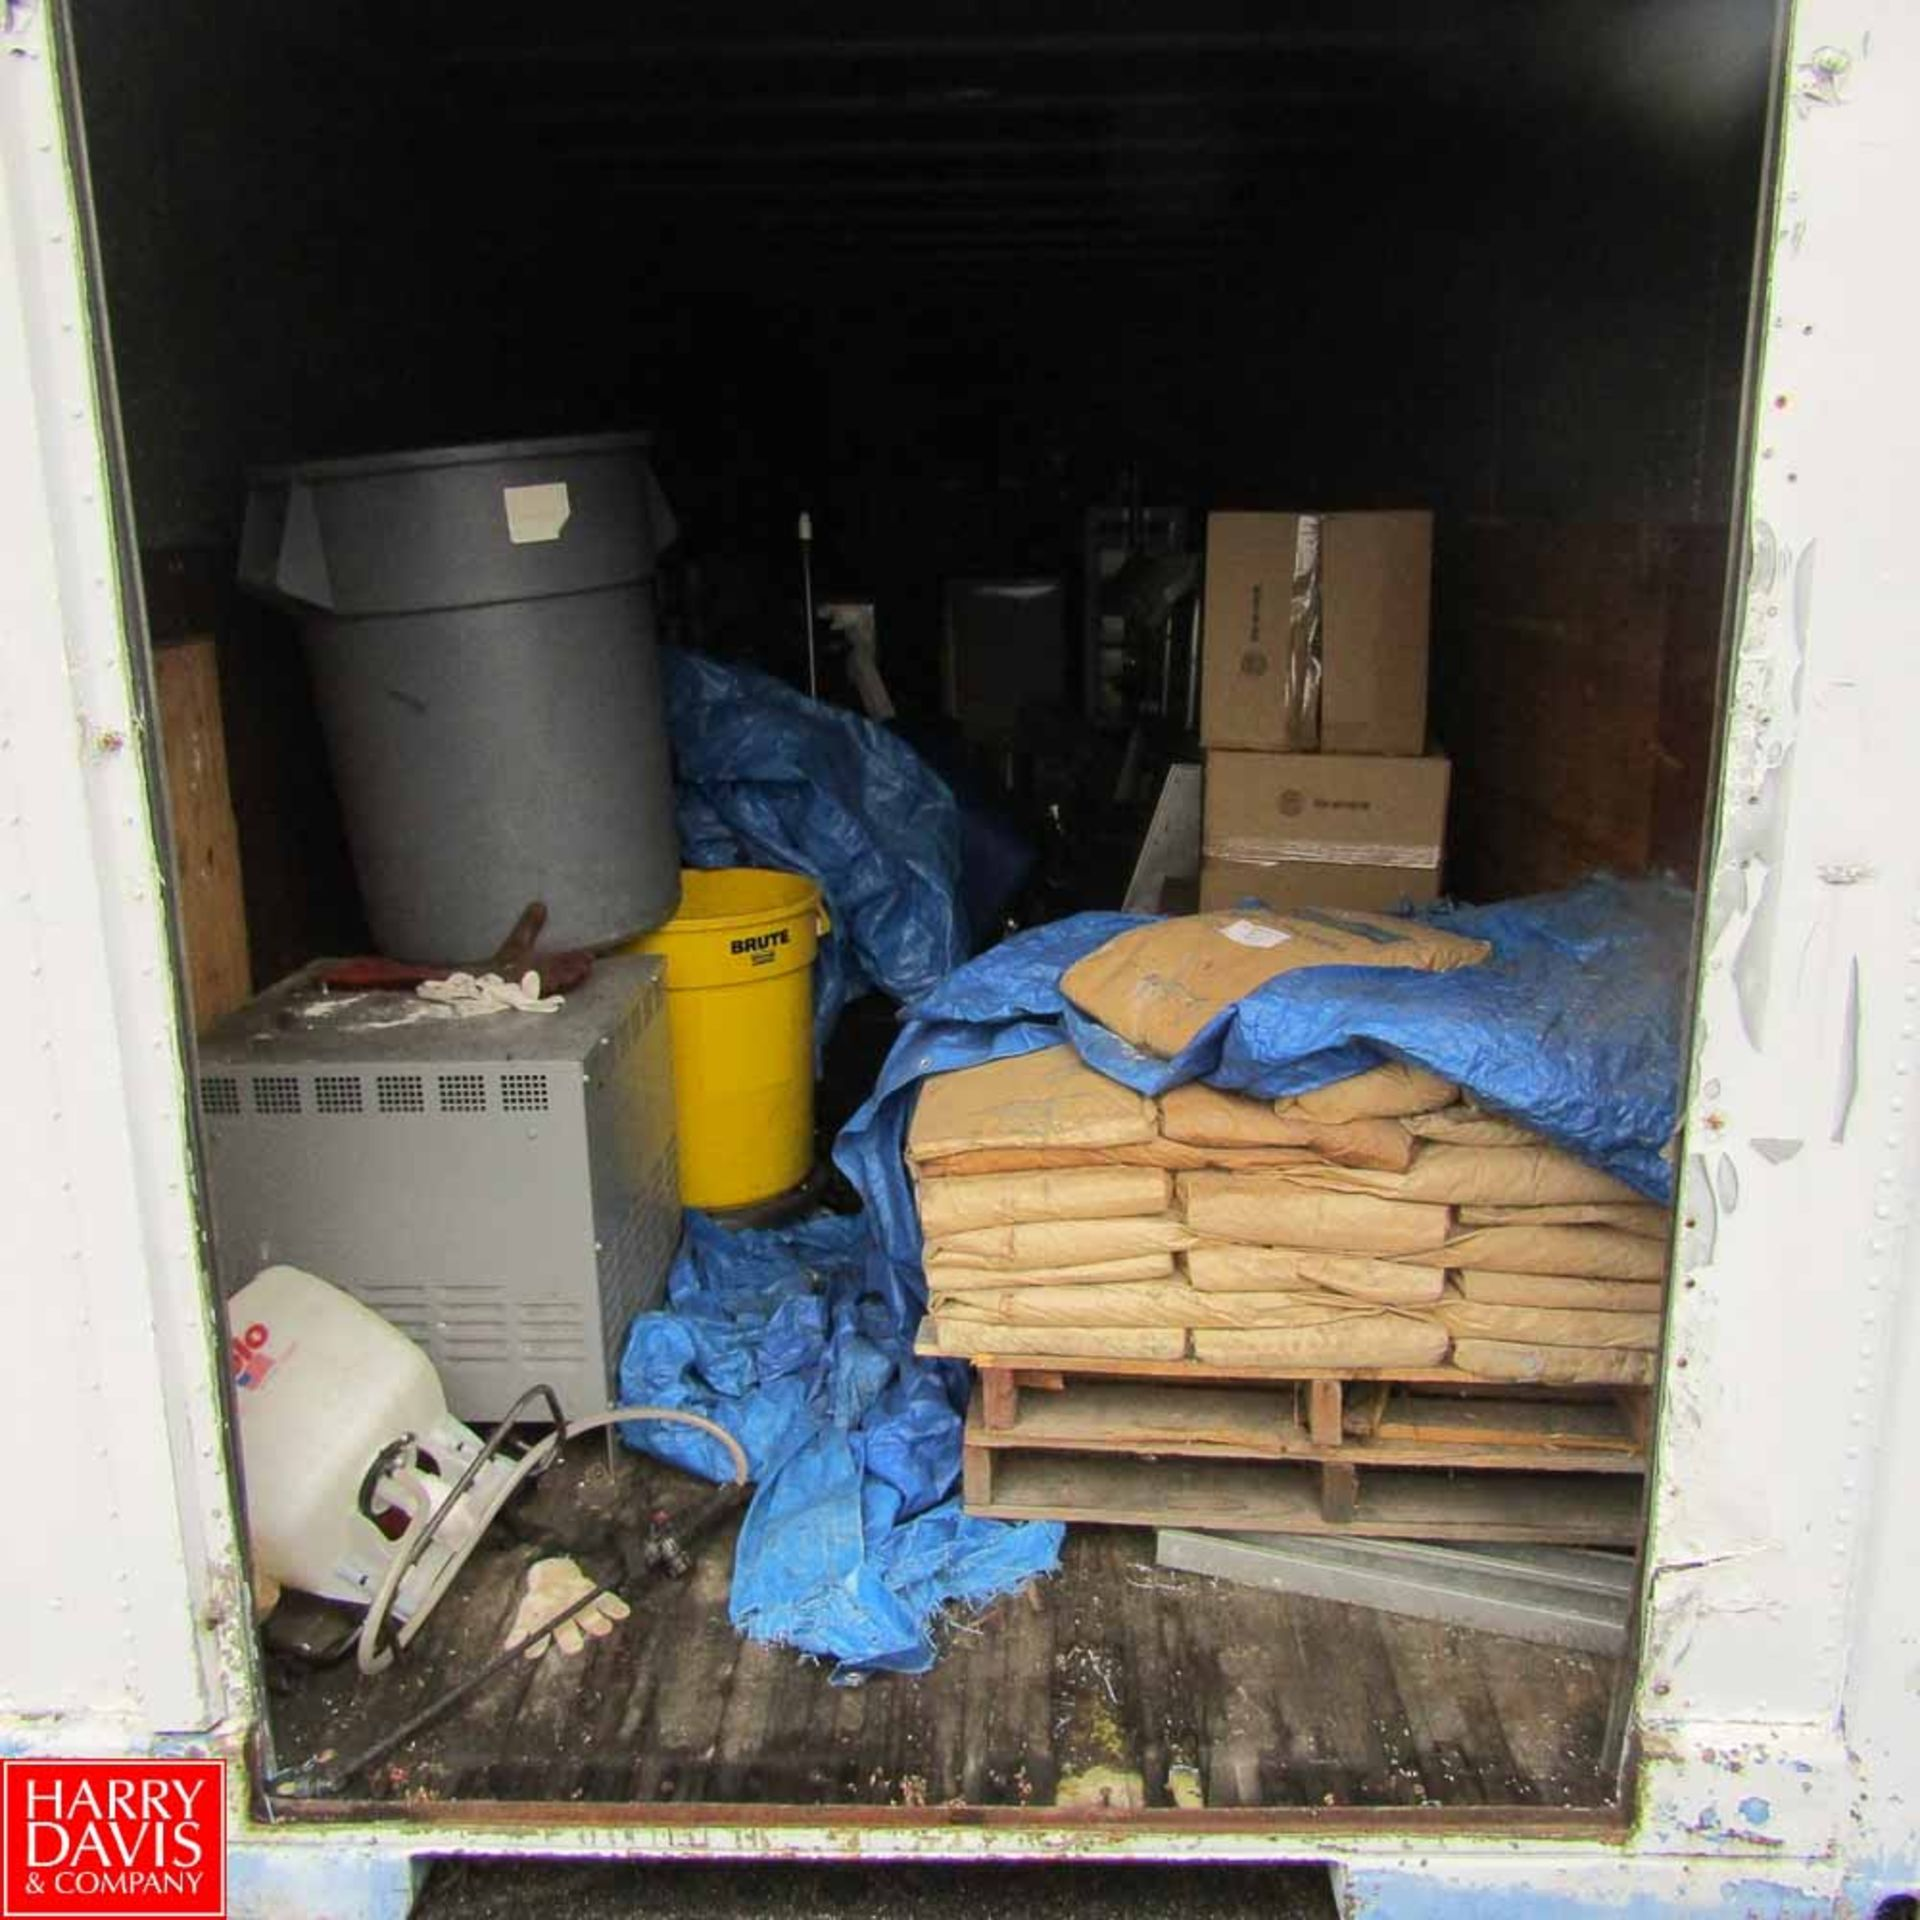 Lot 615 - 40' Shipping Container with Contents Including: Sausage Linker Spare, Spare Transformers, Lincoln